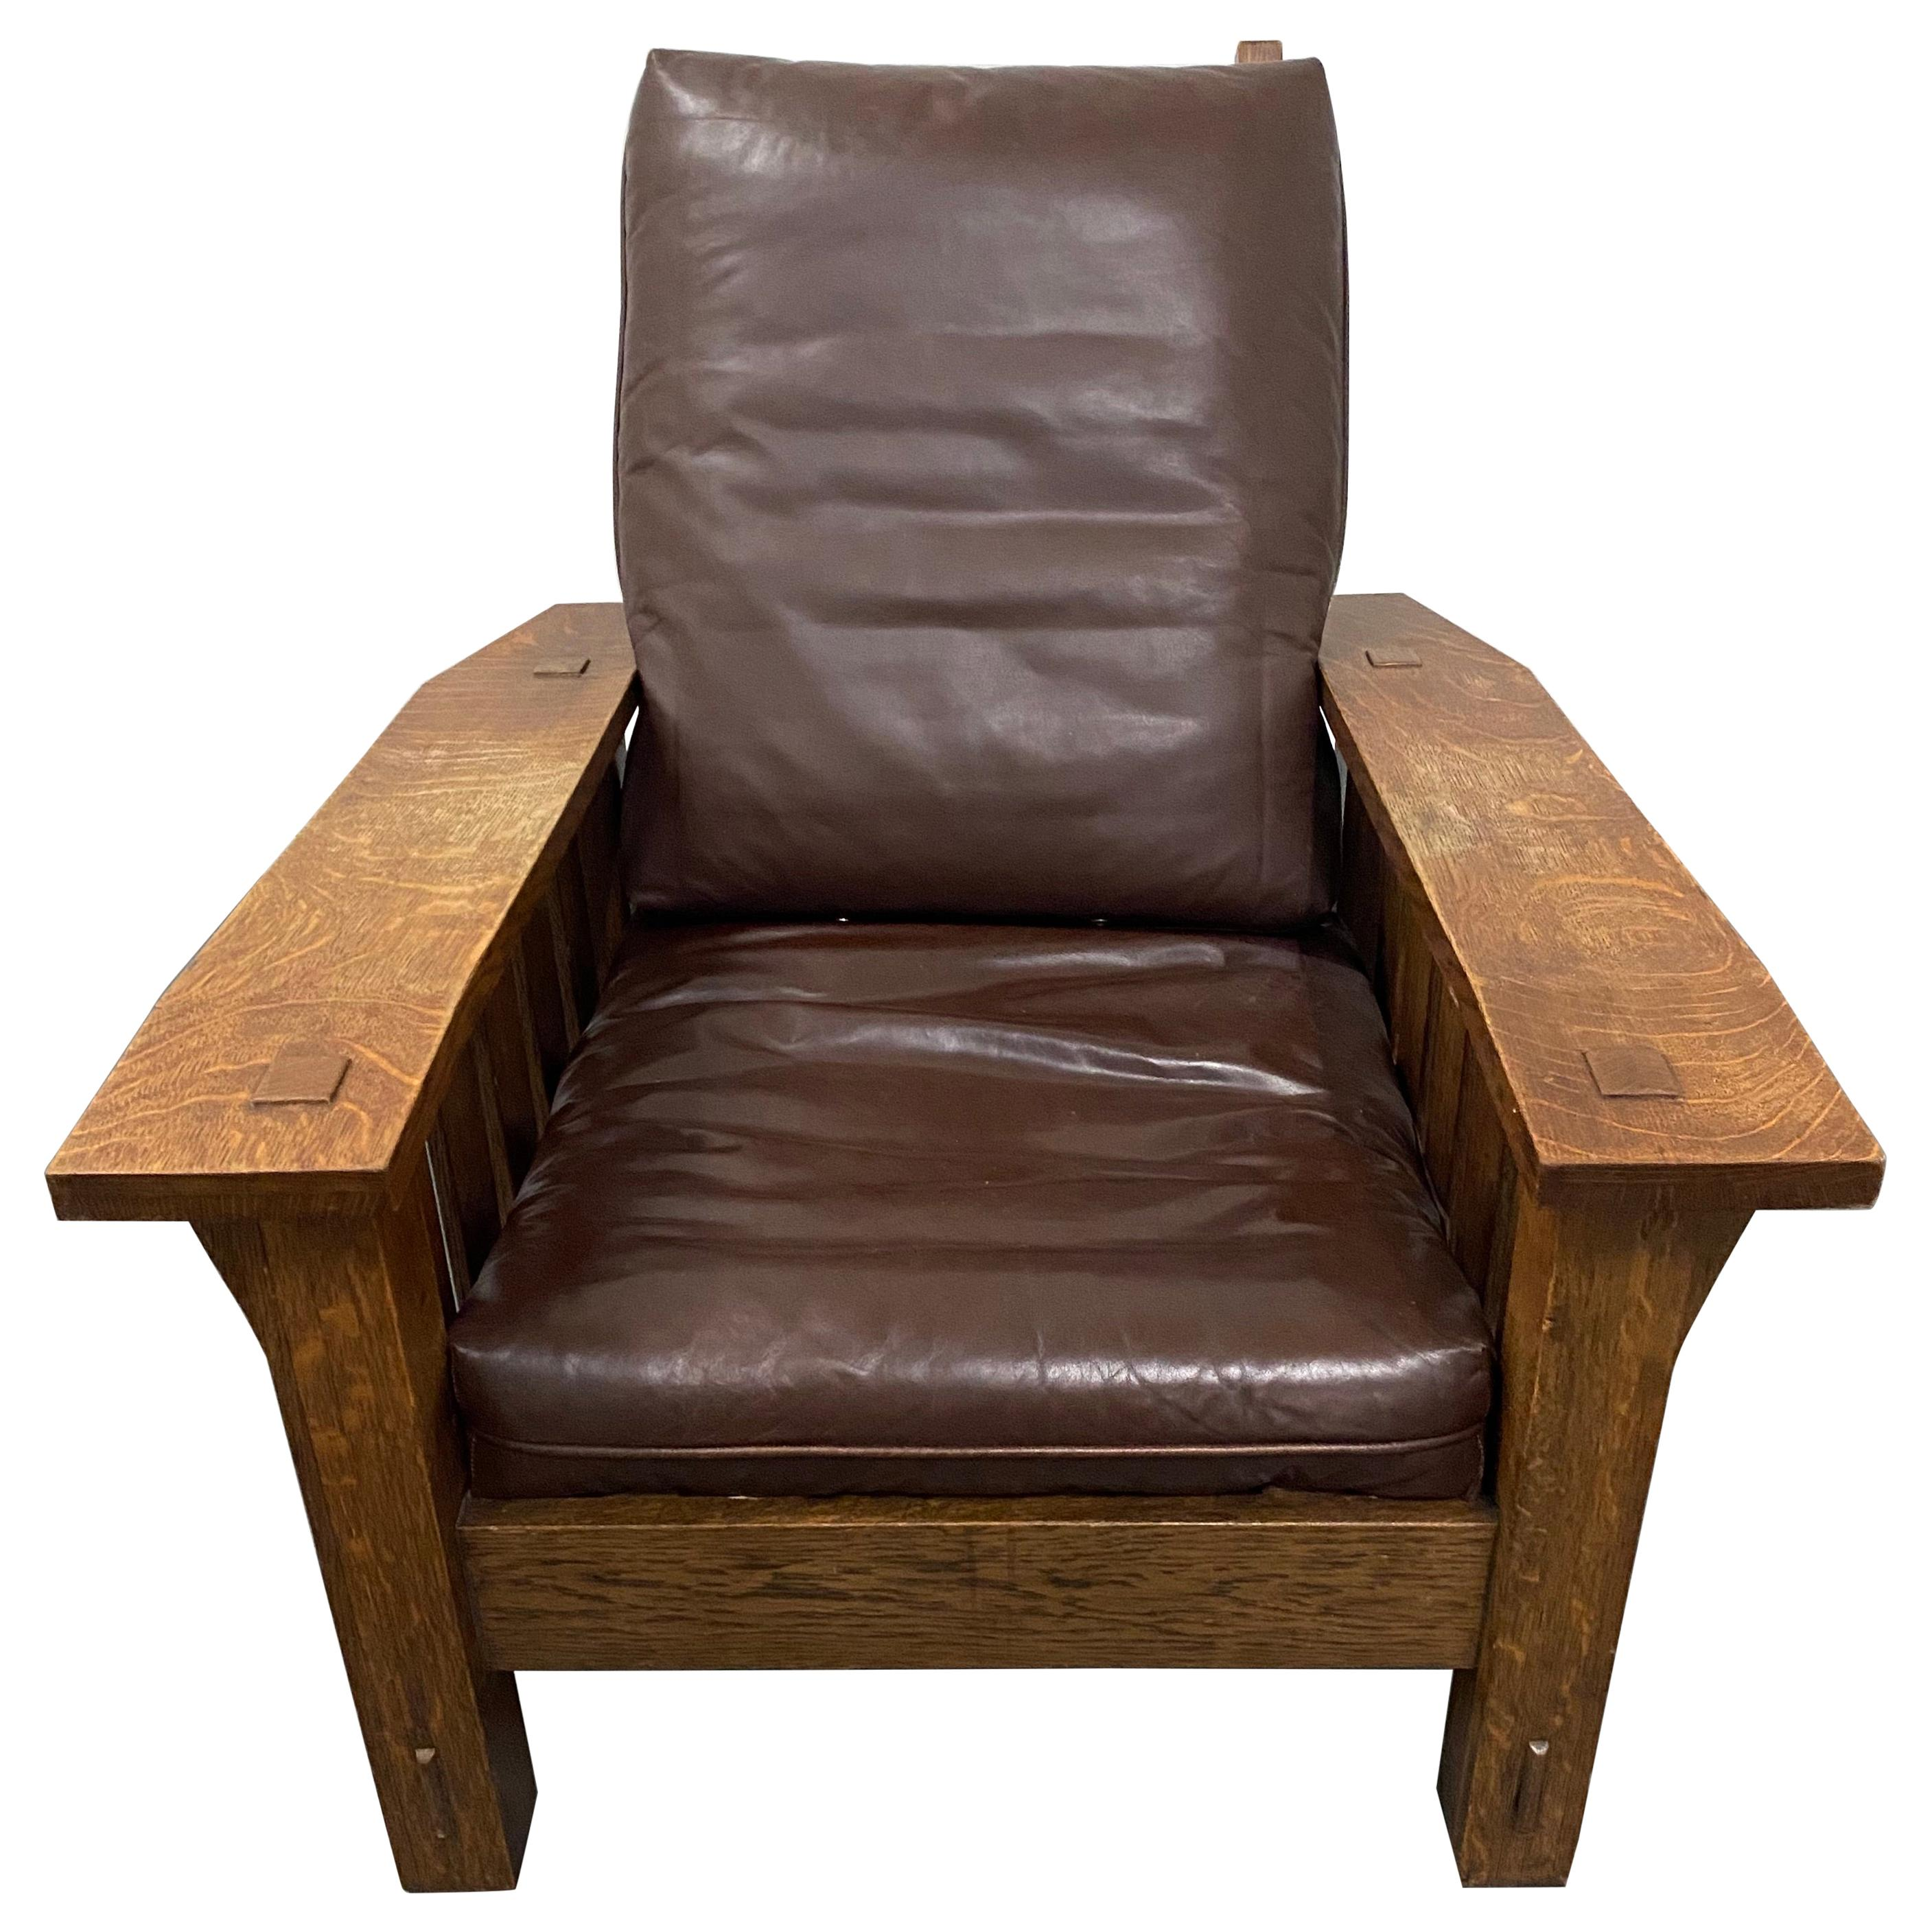 Stickley Arts & Crafts Mission Oak and Leather Armchair, circa 1920